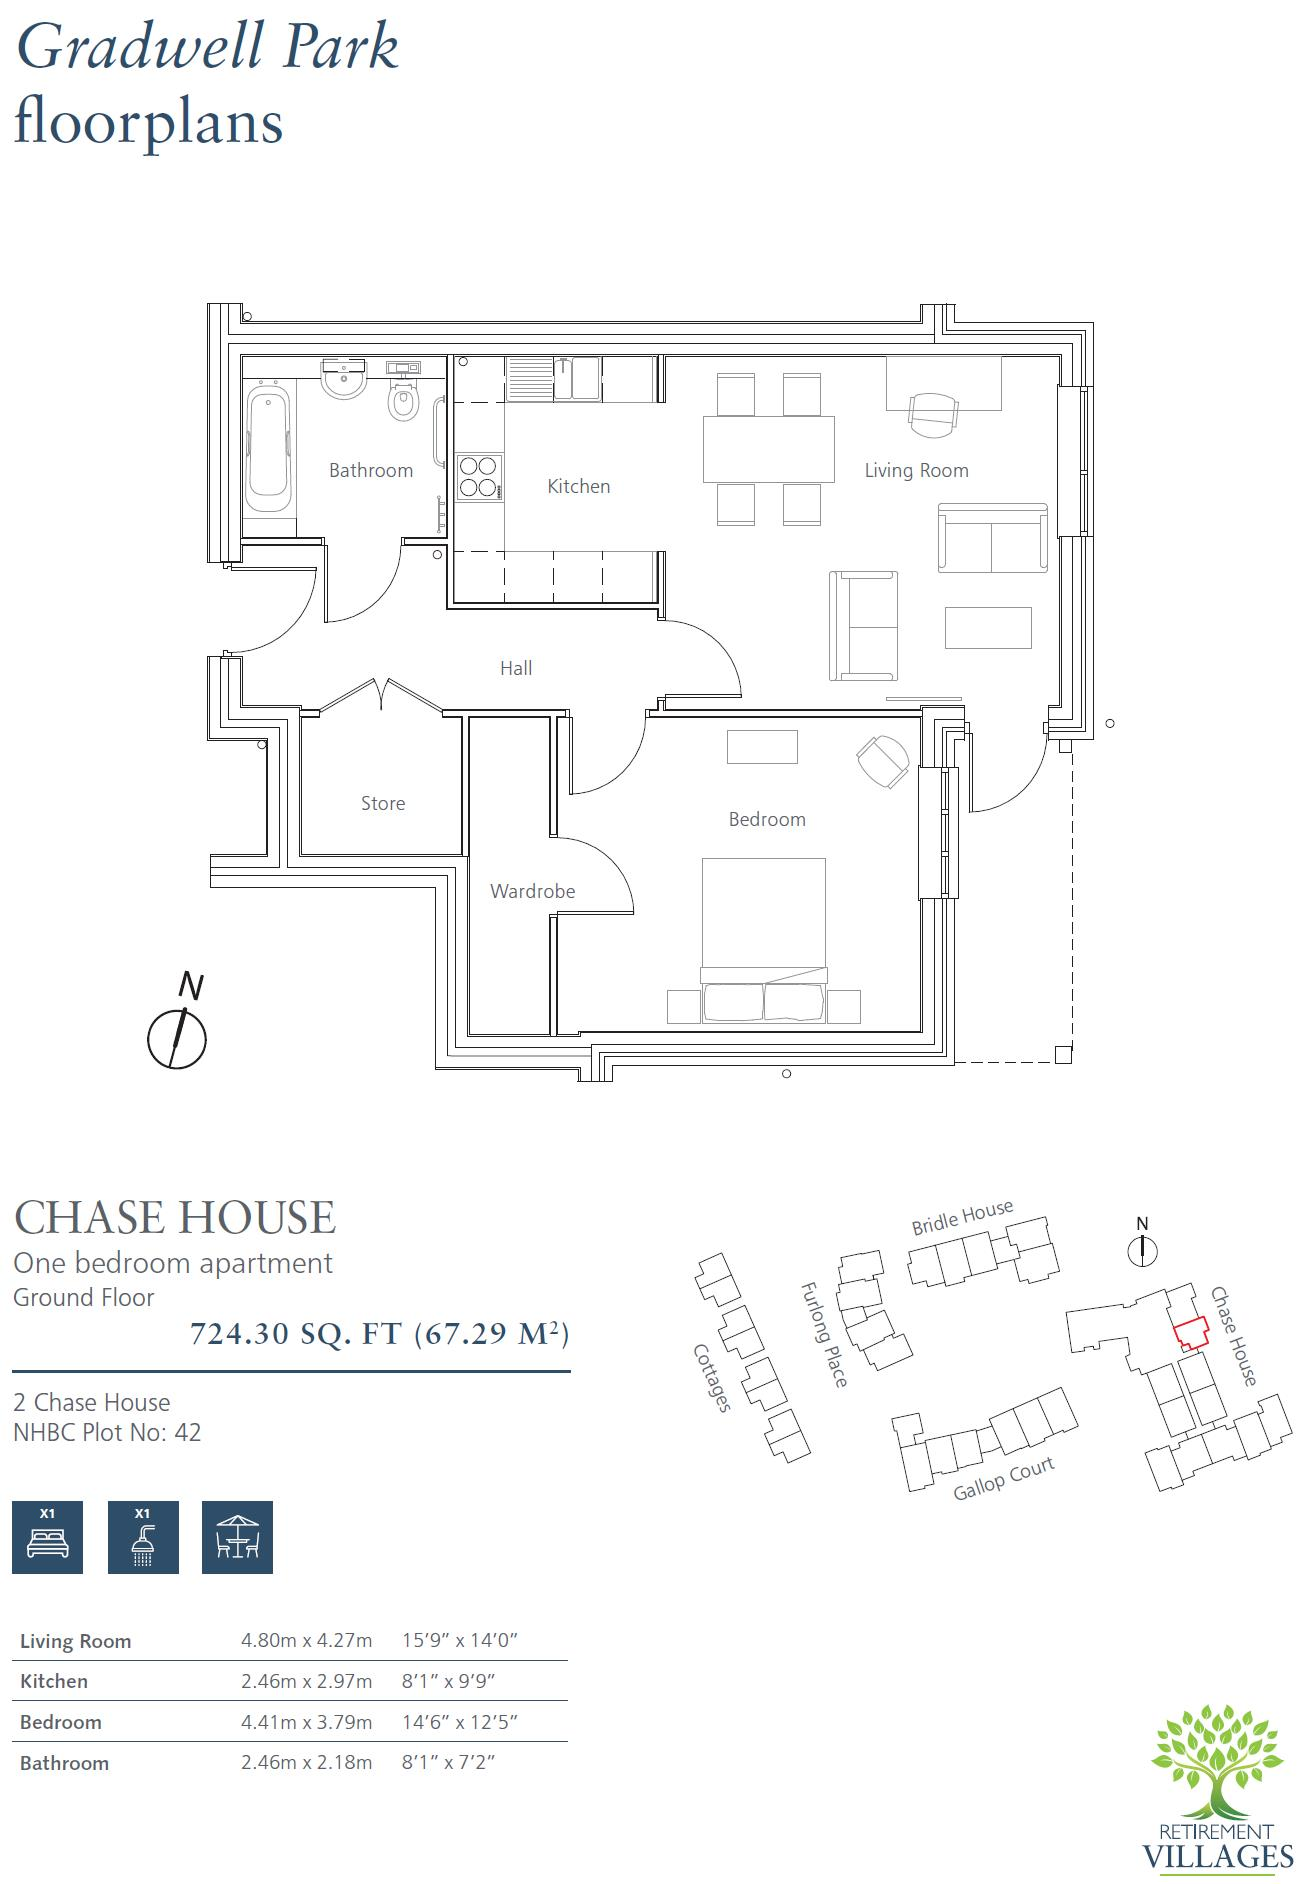 New Build, 2 Chase House Floorplan